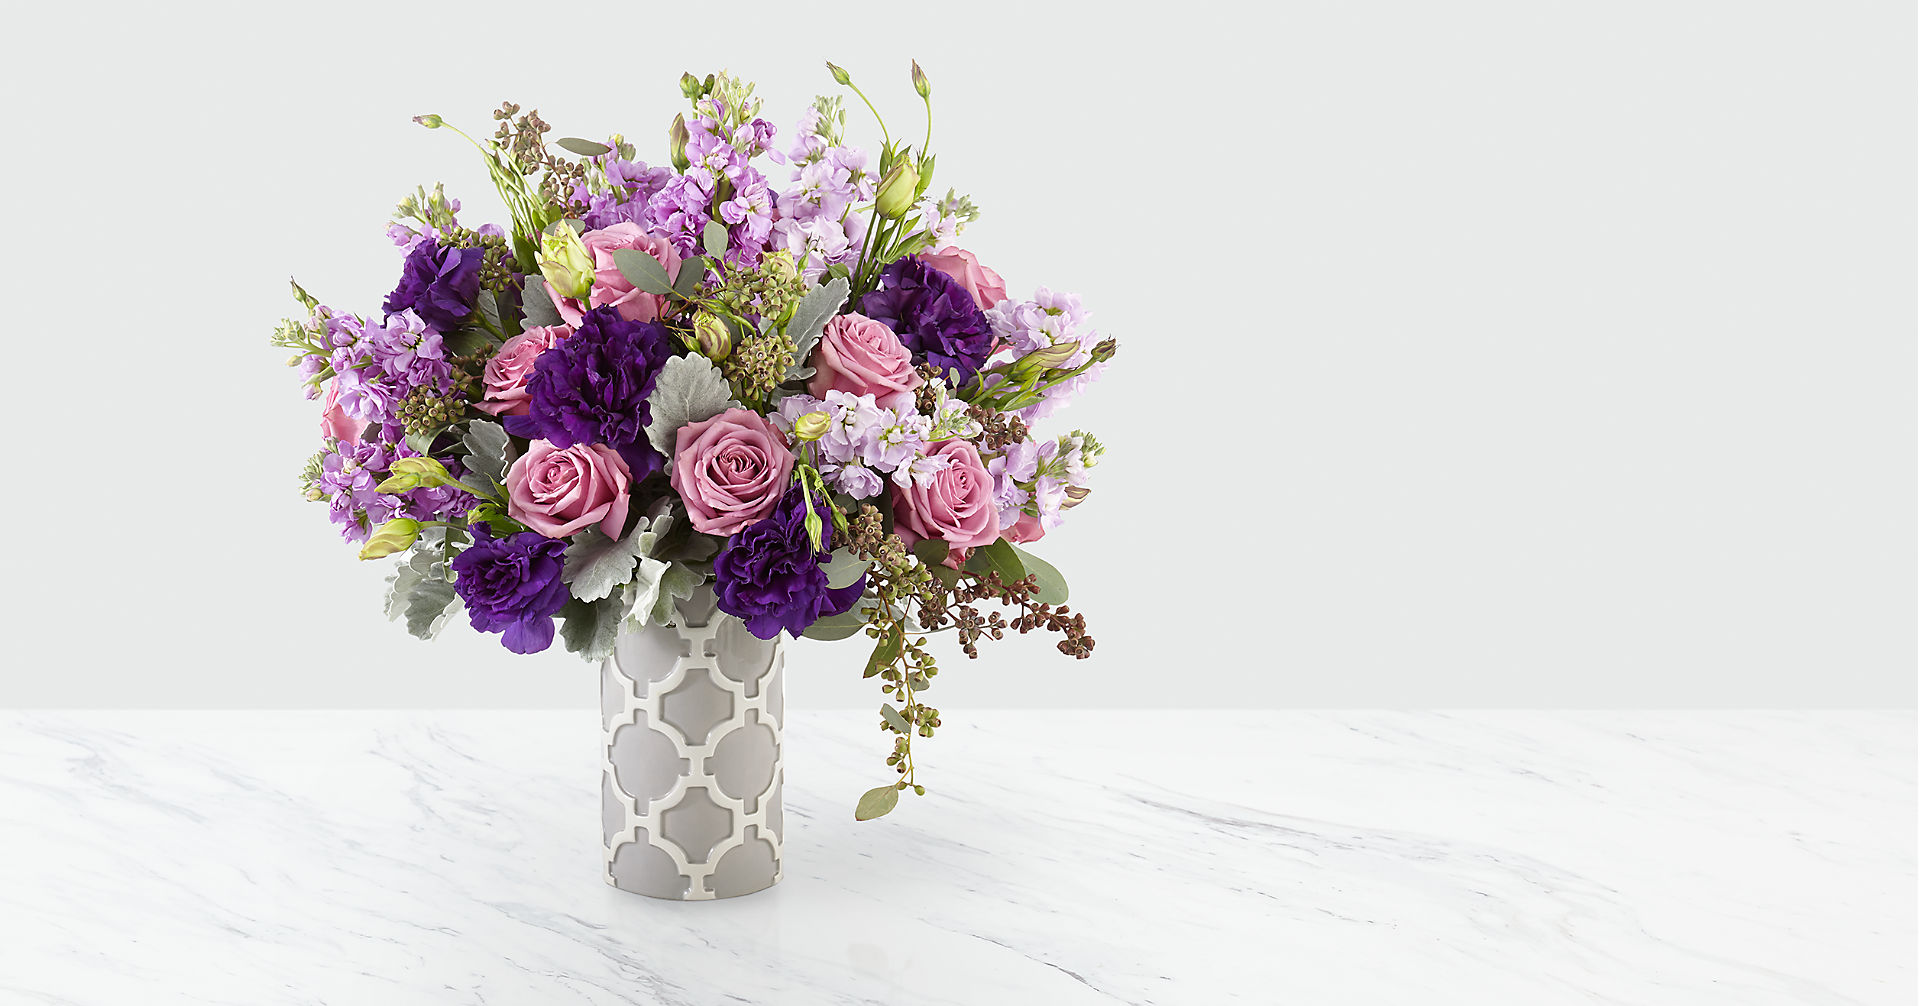 Mademoiselle™ Luxury Bouquet - Deluxe - Image 1 Of 4